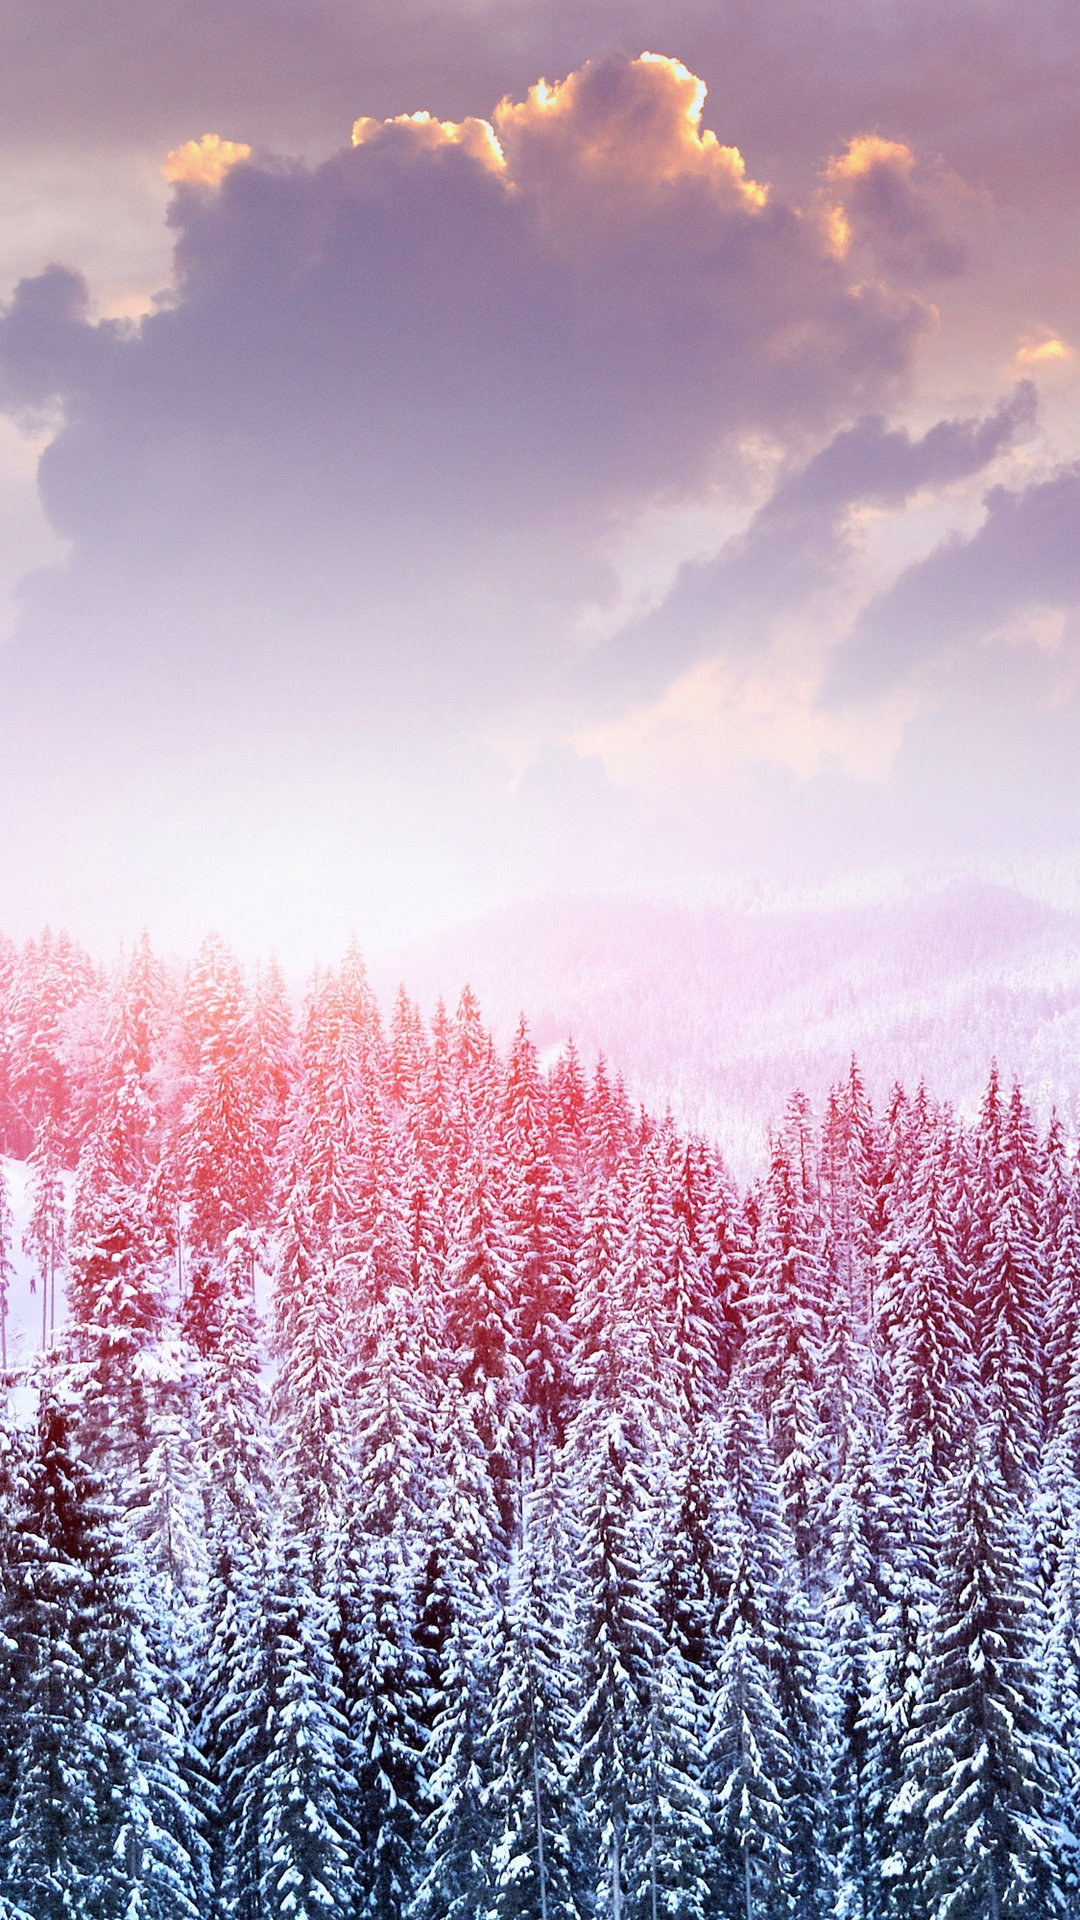 Landscape Winter Snow Trees Mountains Forest Sky Clouds